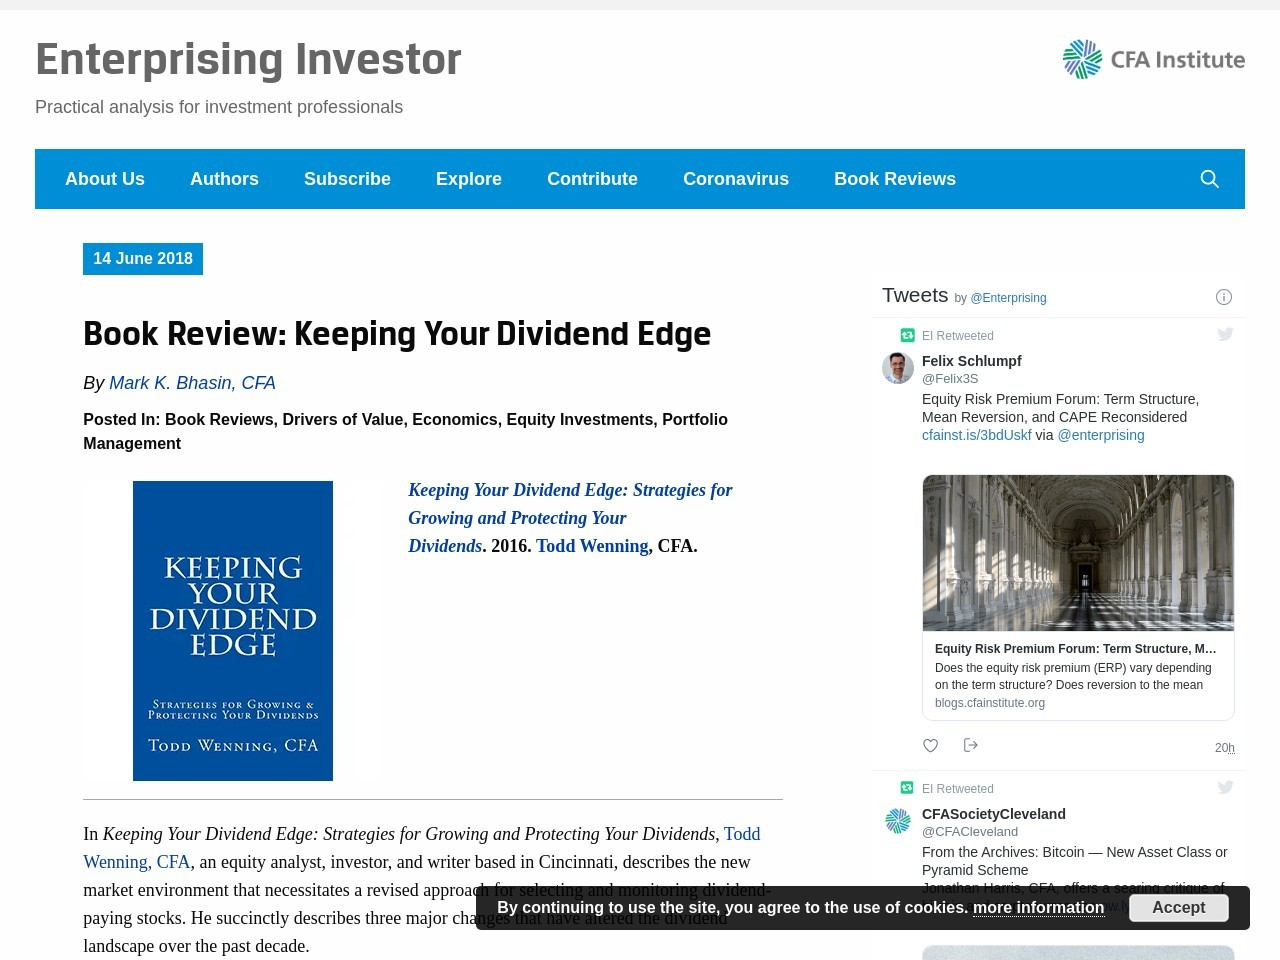 Book Review: Keeping Your Dividend Edge